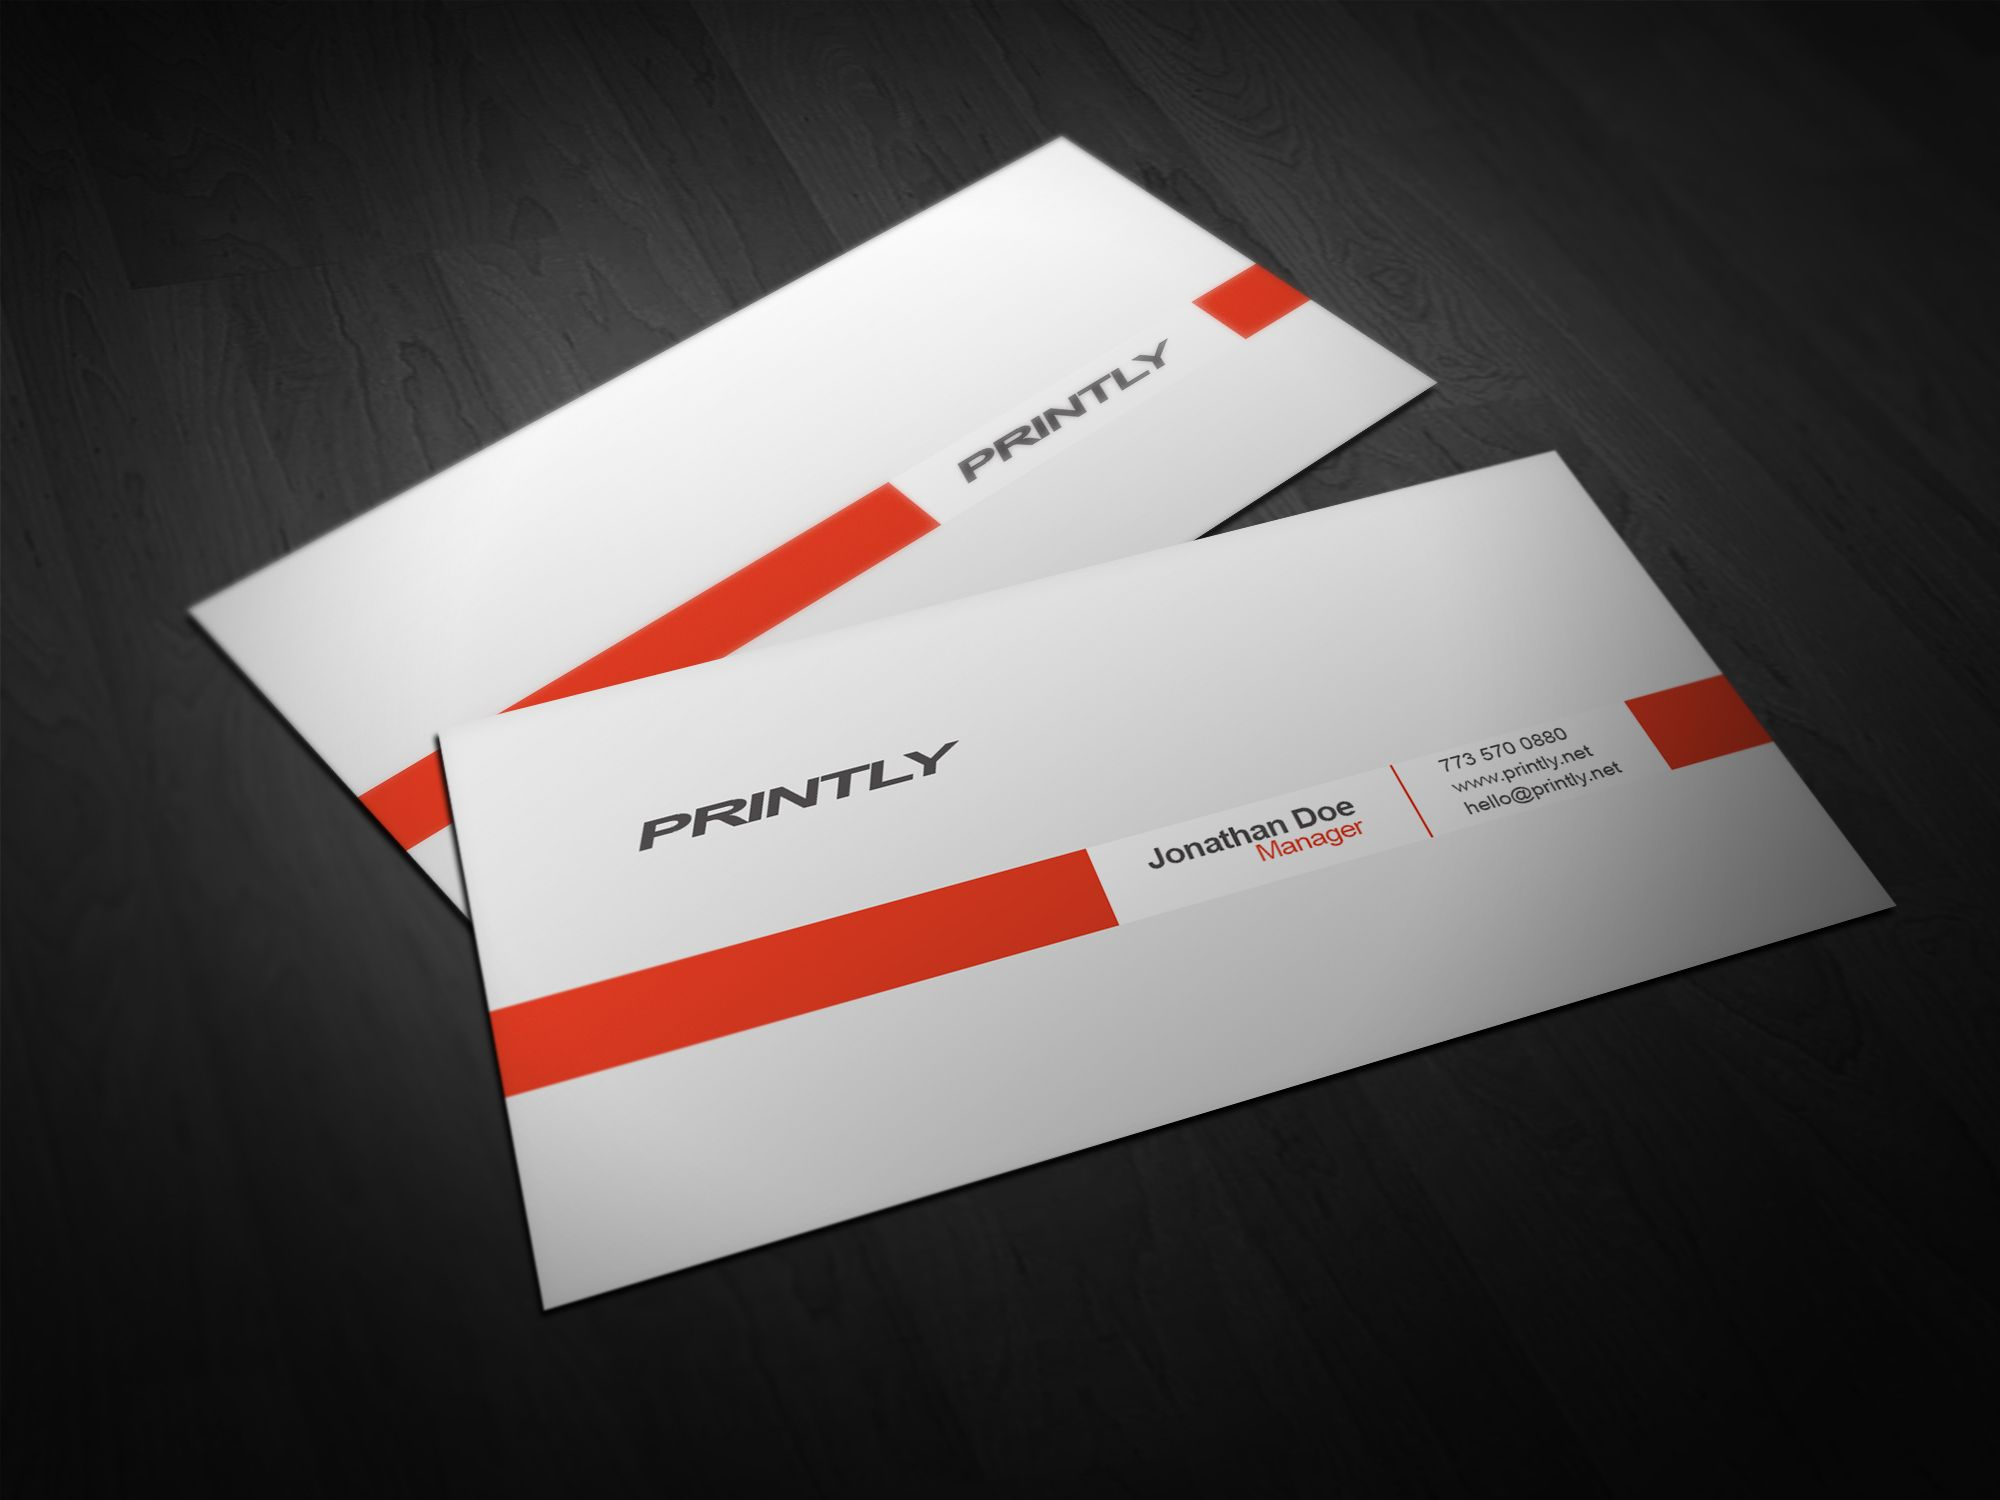 Free printly psd business card template printly design free printable business cards templates by printly fbccfo Image collections